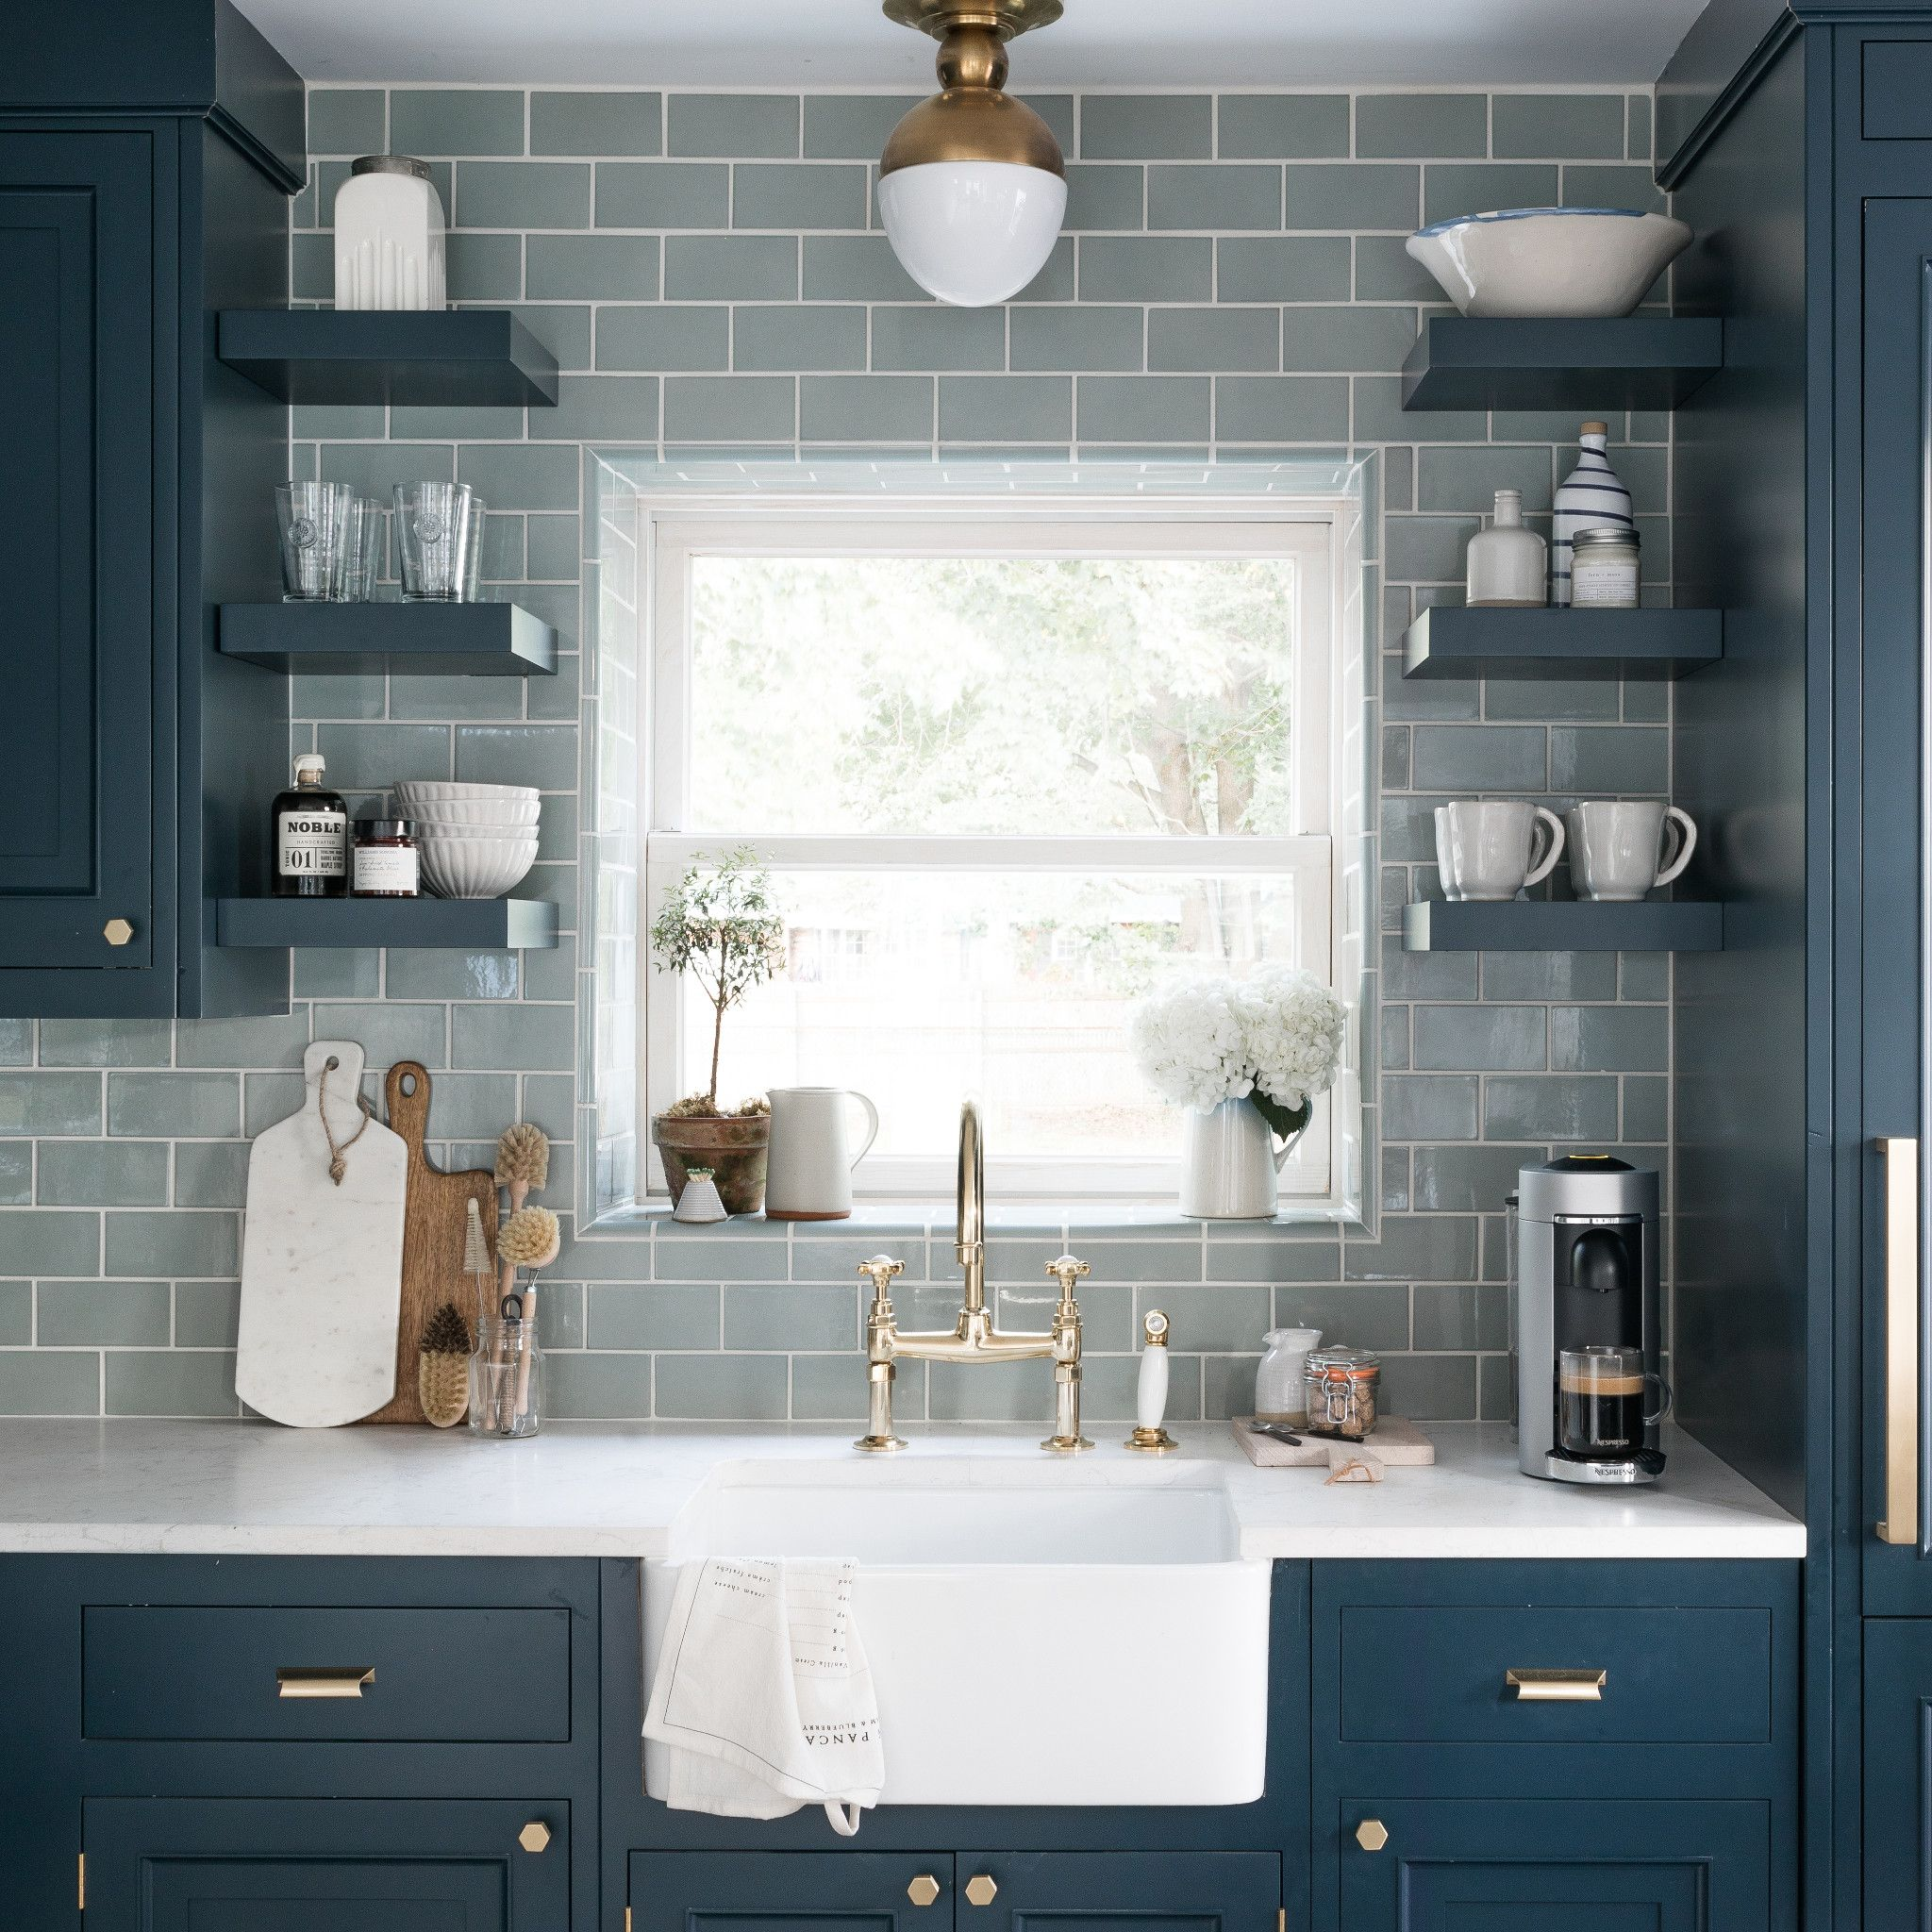 Navy and gray kitchen with Torquay Matte™ countertop.